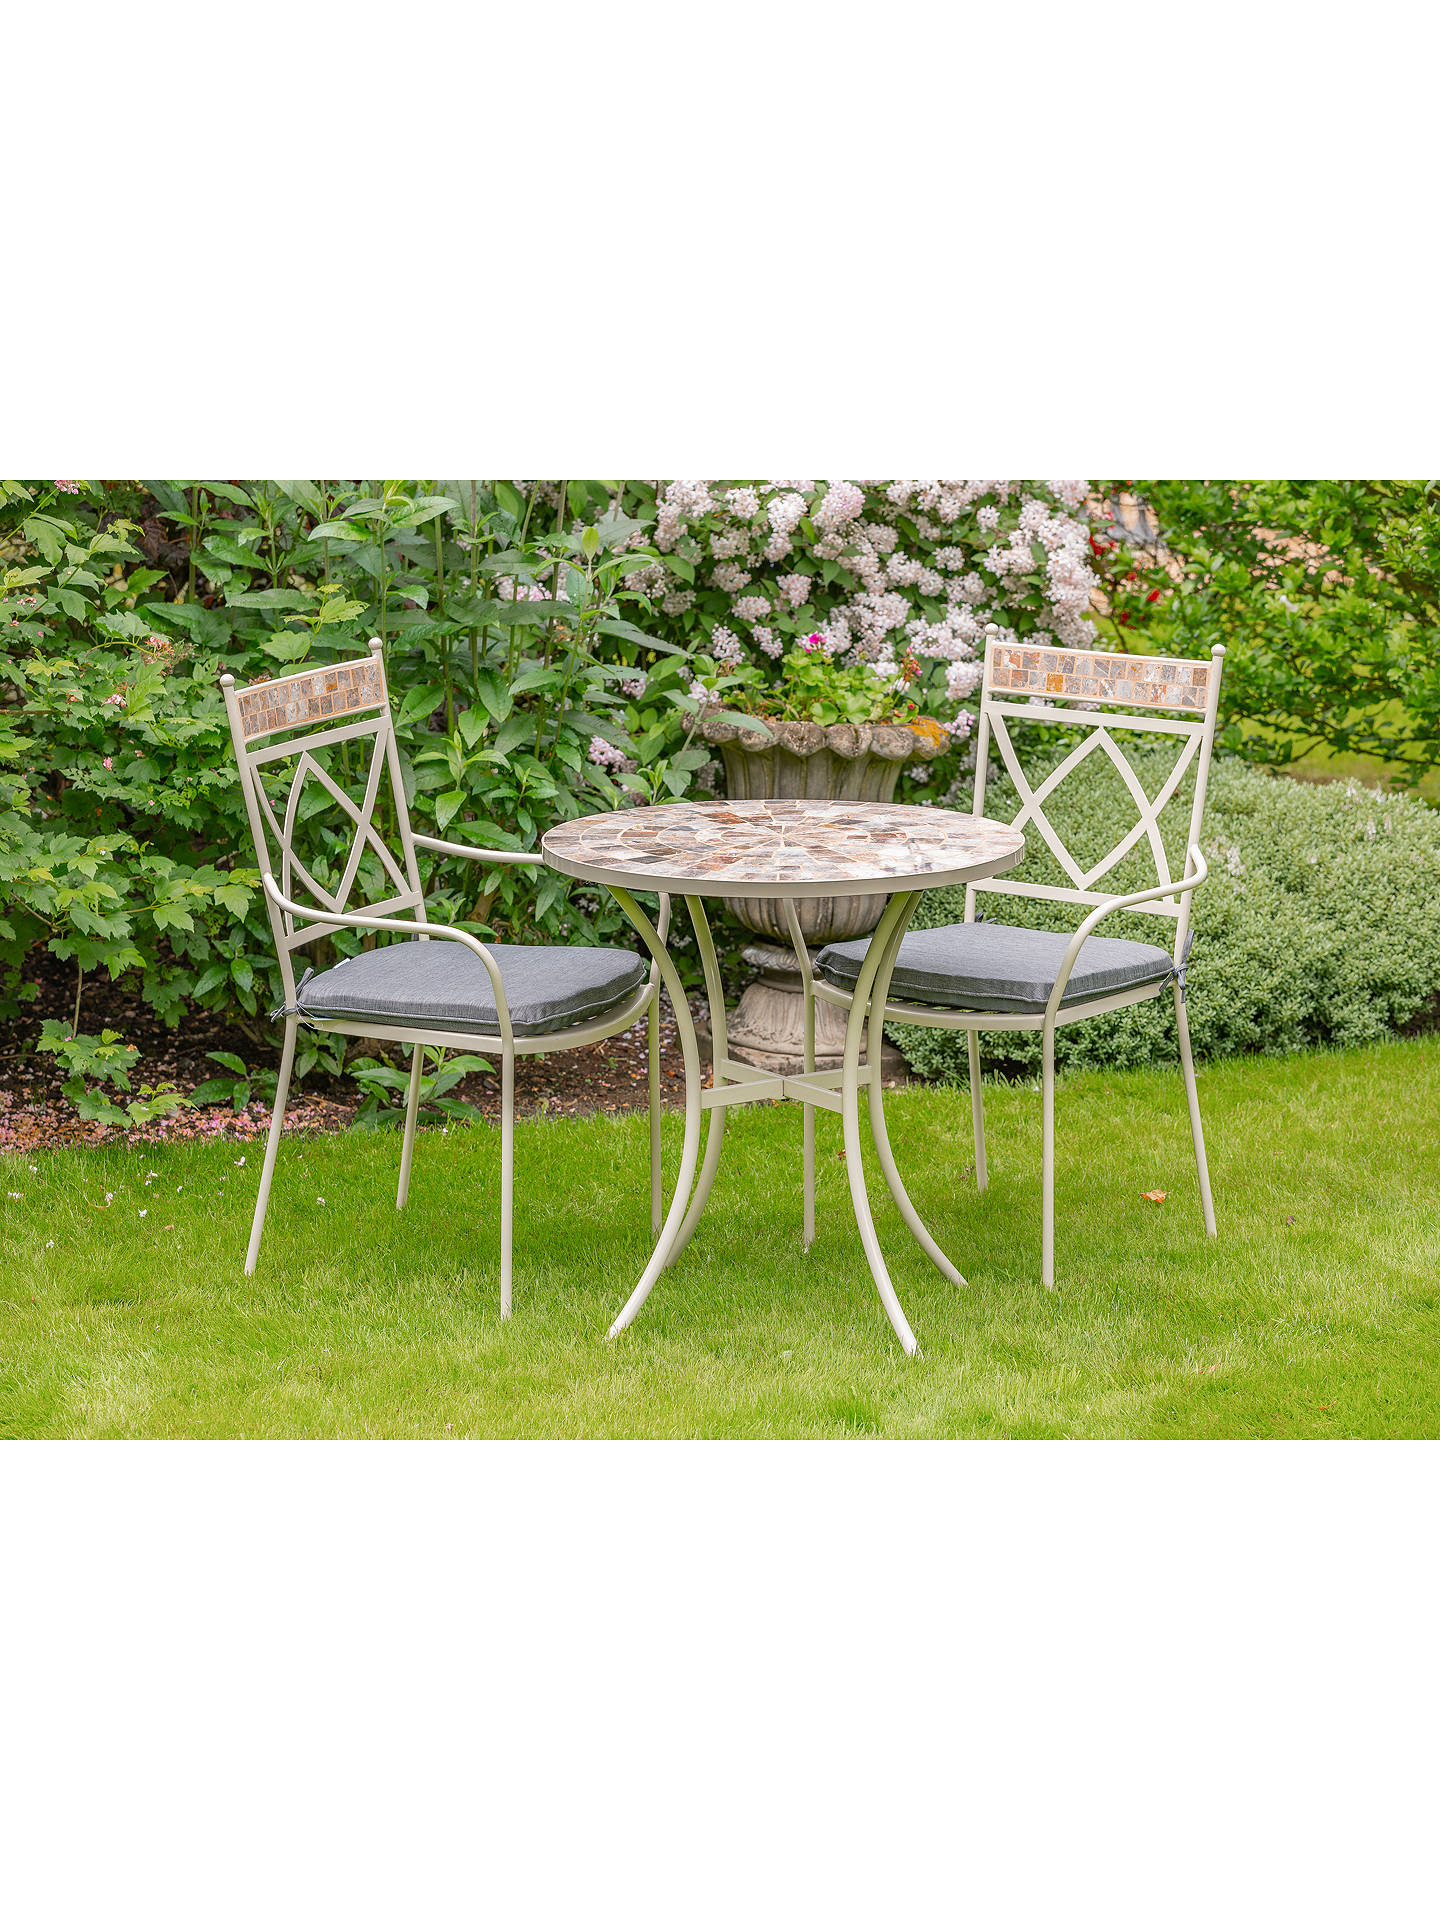 Buy LG Outdoor Morocco 2-Seater Garden Bistro Table & Chairs Set Online at johnlewis.com